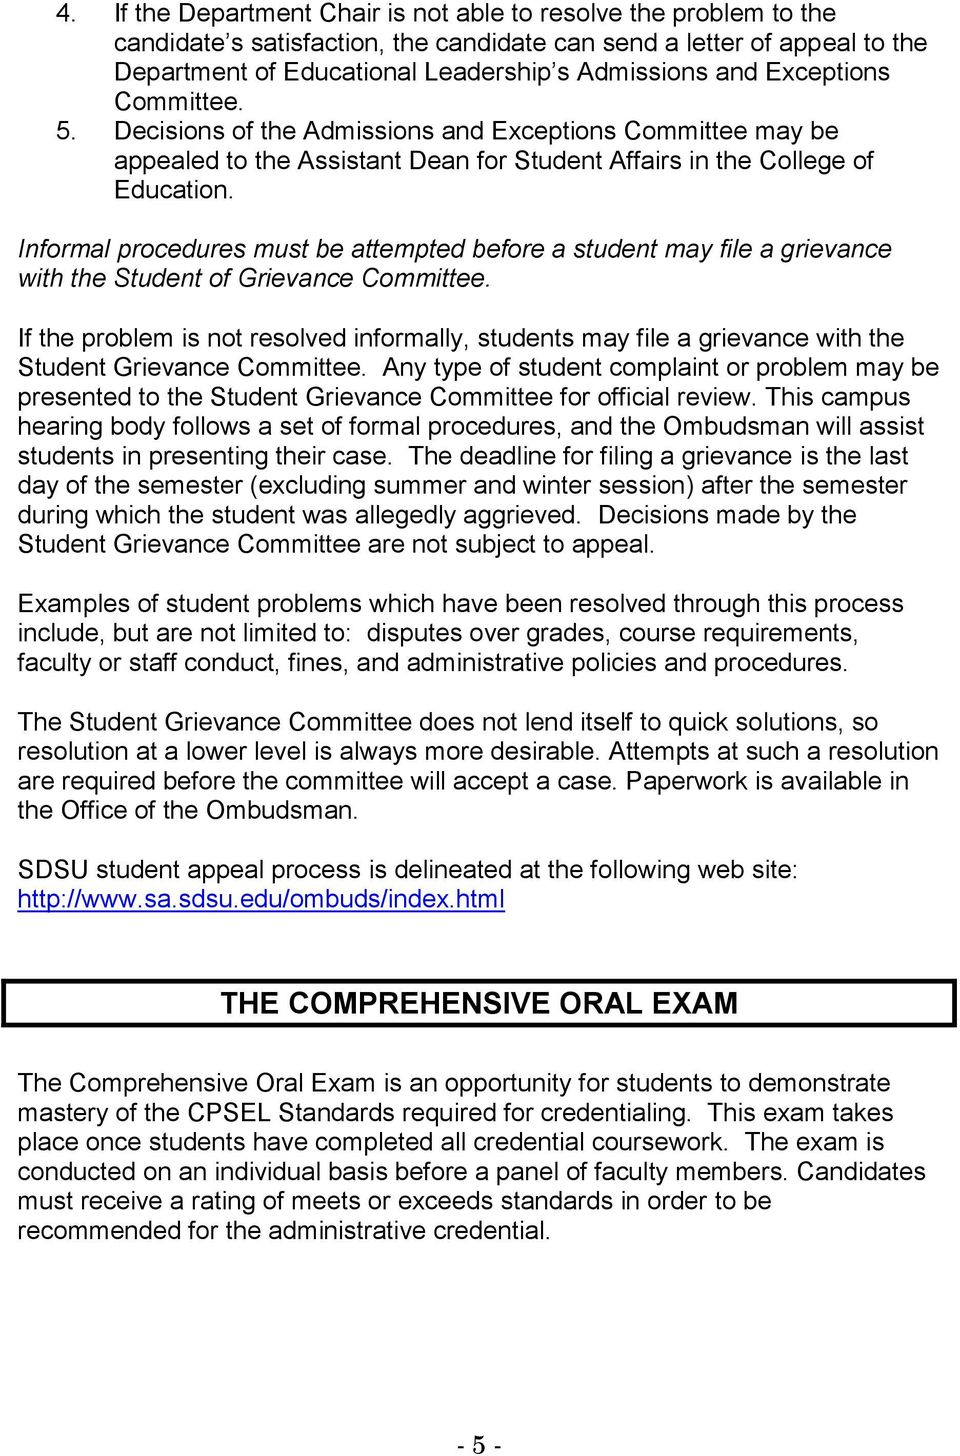 Informal procedures must be attempted before a student may file a grievance with the Student of Grievance Committee.